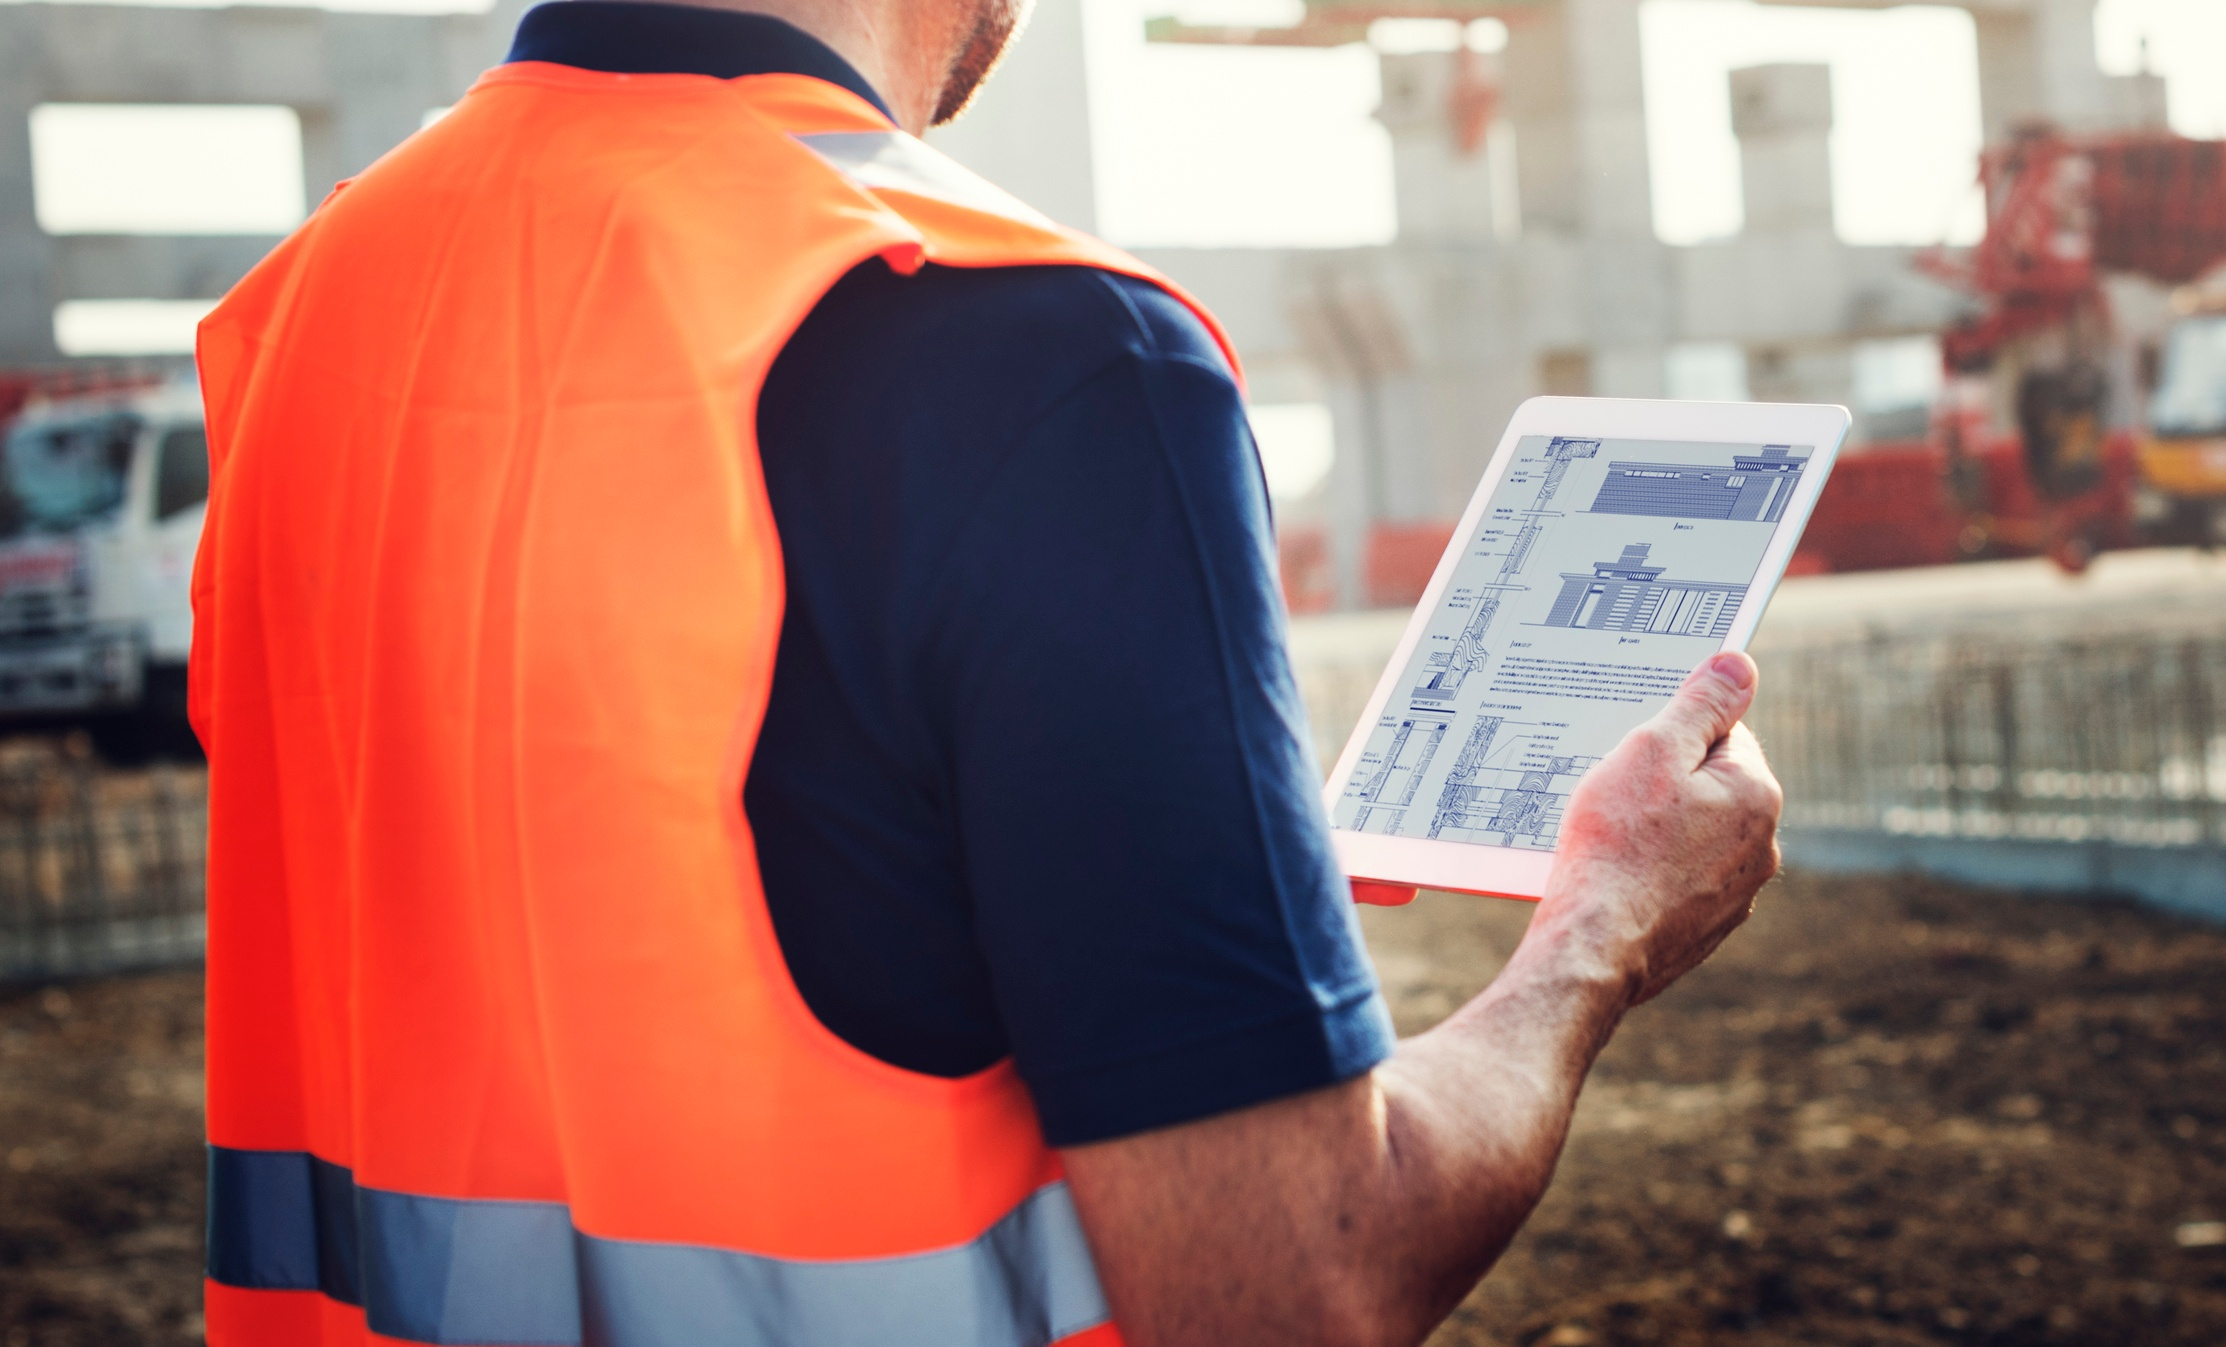 The combination of Building Information Modeling and mobile could be more revolutionary than AI for the construction market.